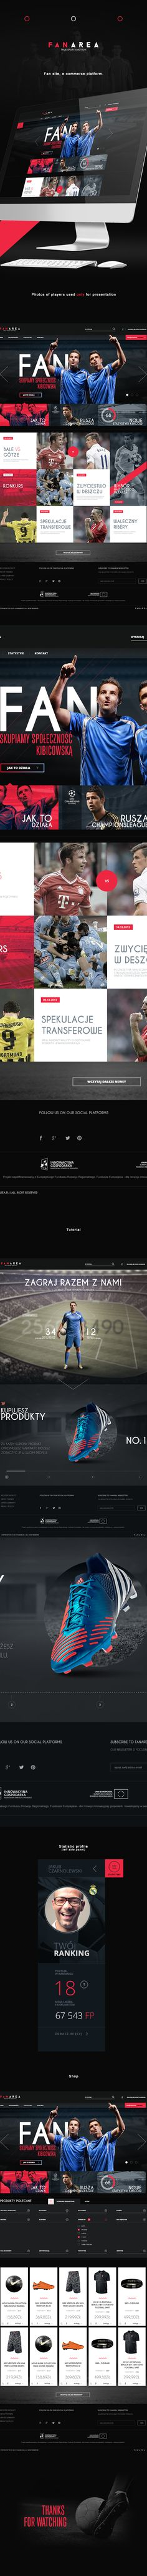 Football Fan Site & Shop by Carlo , via Behance